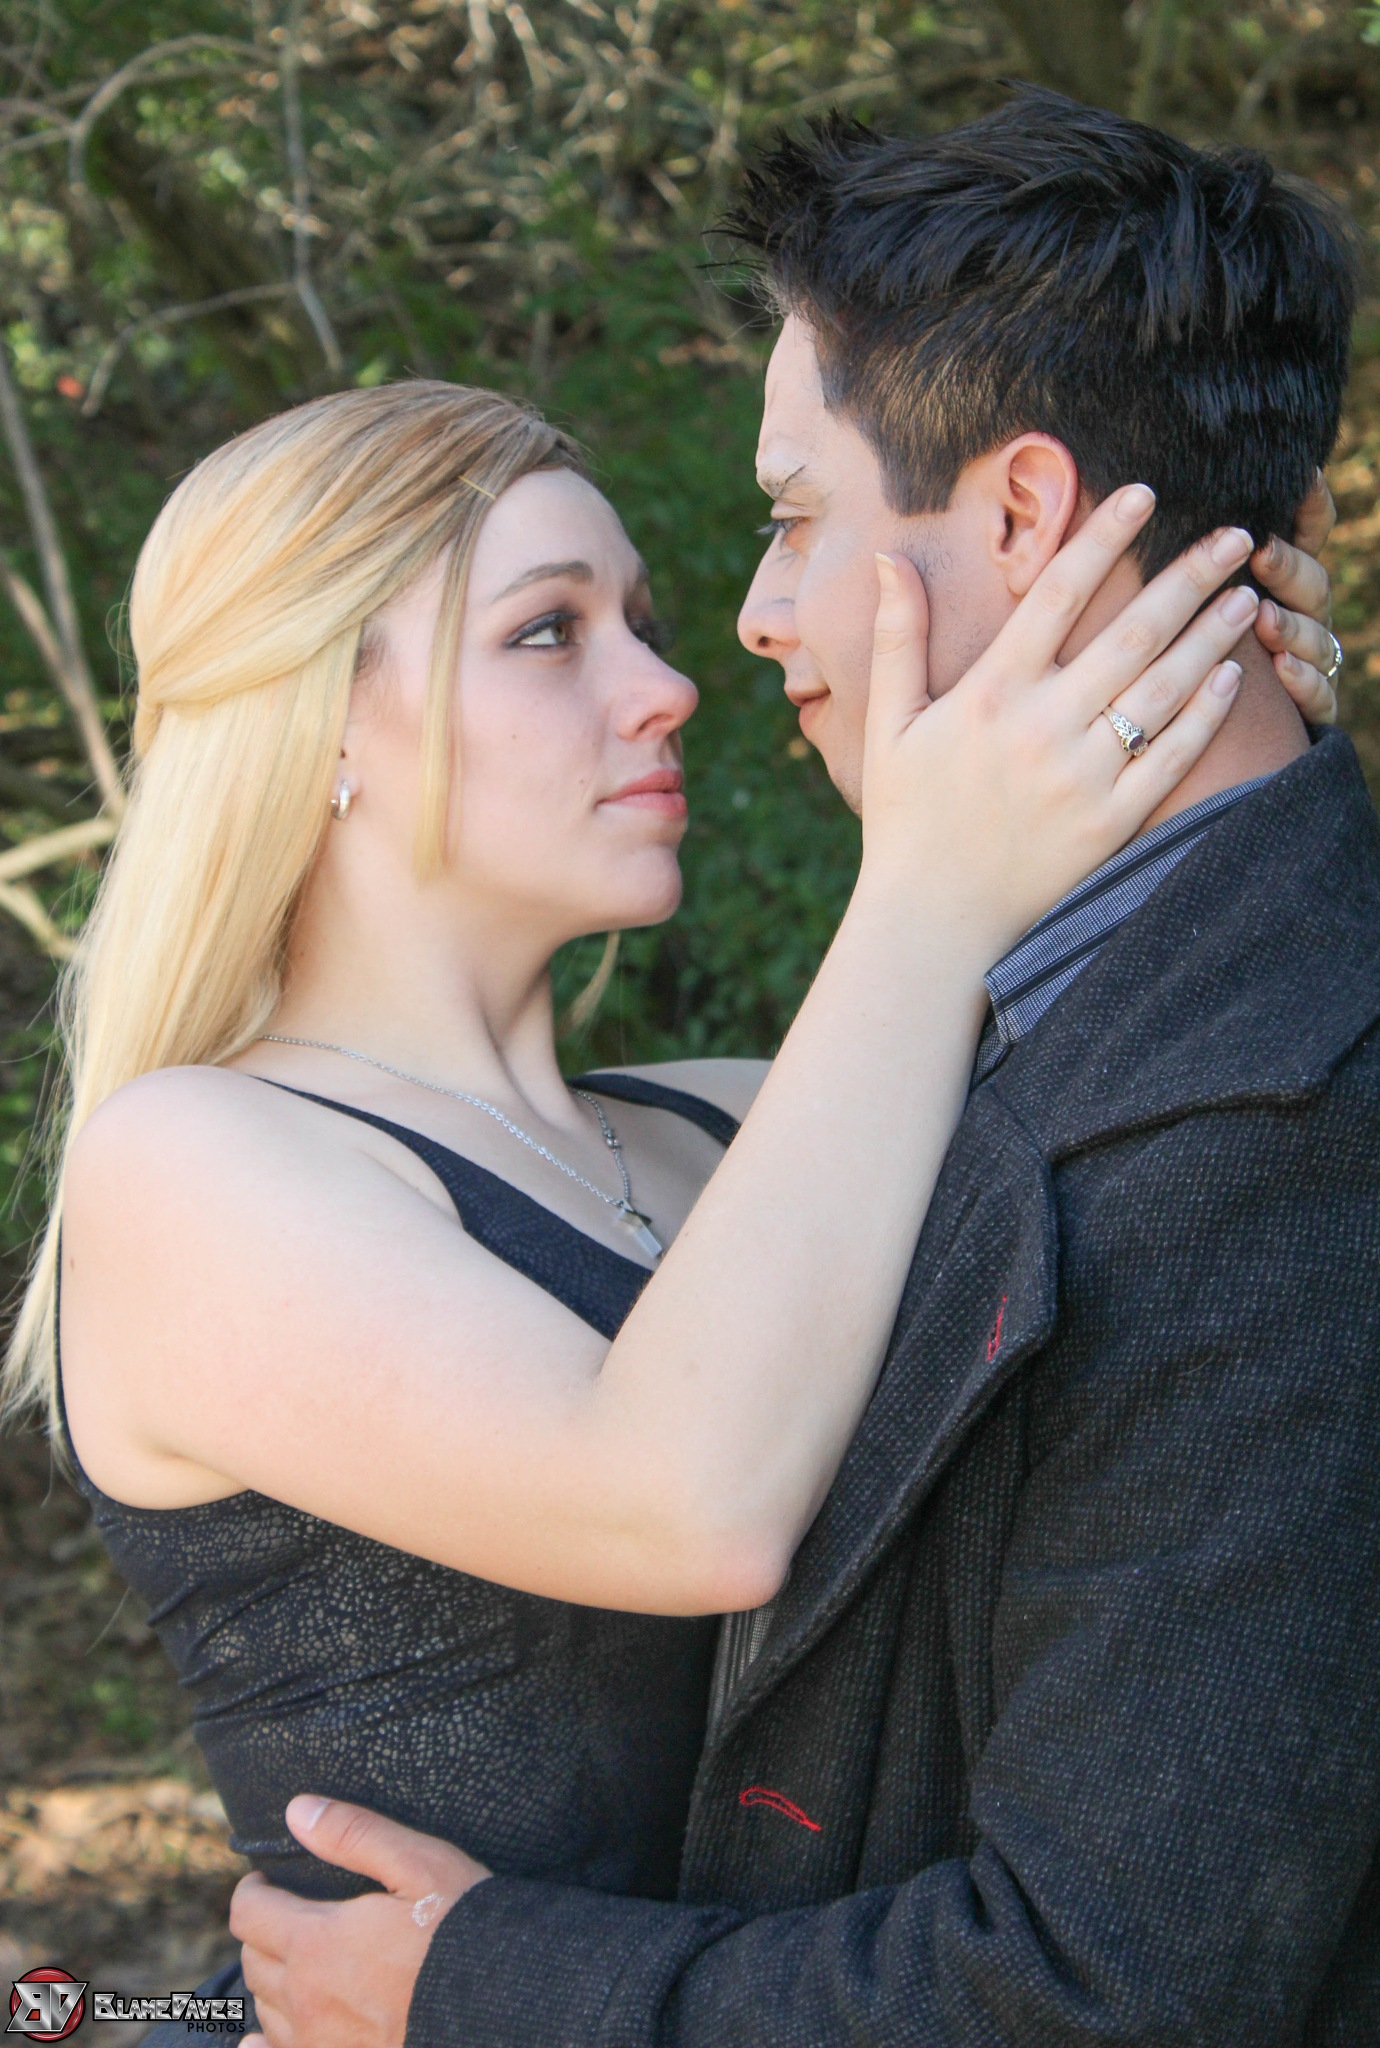 Buffy and Angel cosplay by Dave Billett